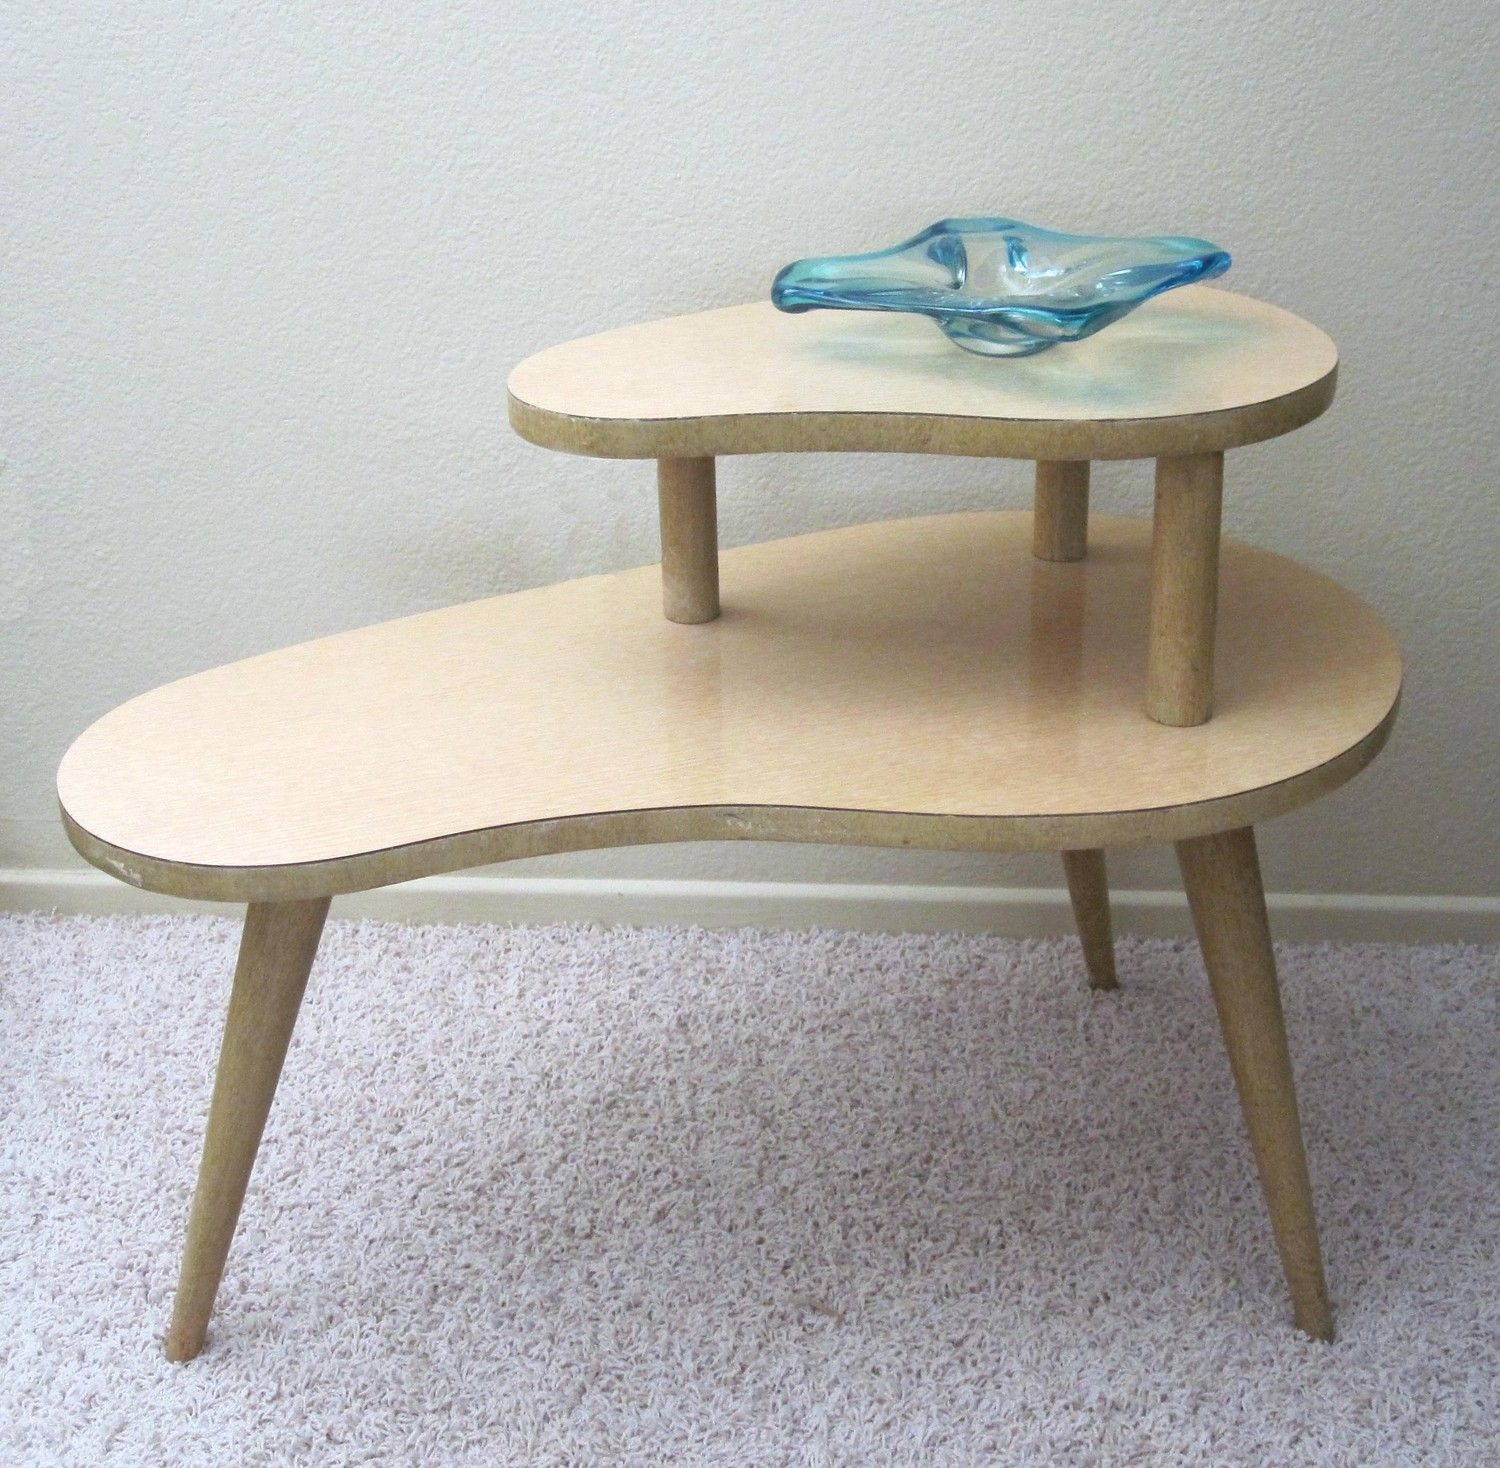 vintage kidney shaped tier end table retro blonde wood accent target grandparents had one these their basement pottery barn decor architect lamp ethan allen glass top coffee hand